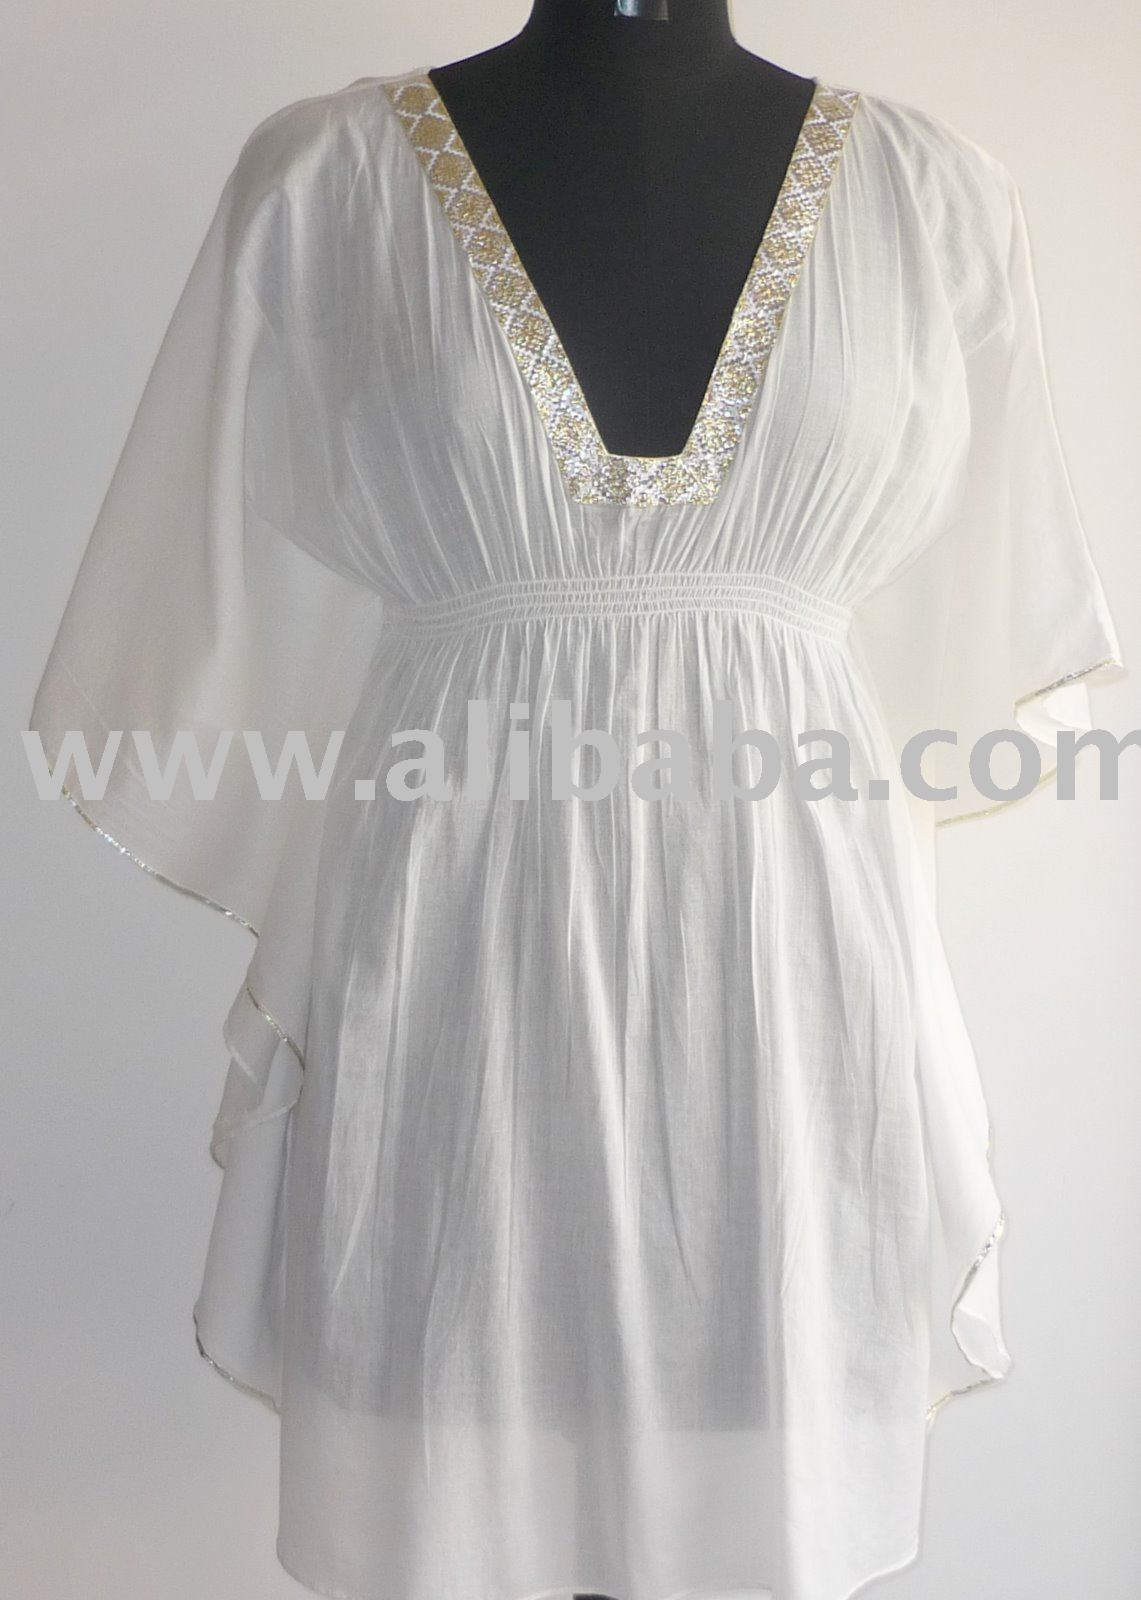 Plage caftan, Plage tunique, Plage Cover up, Robe caftan, Vêtements de plage, Kurti